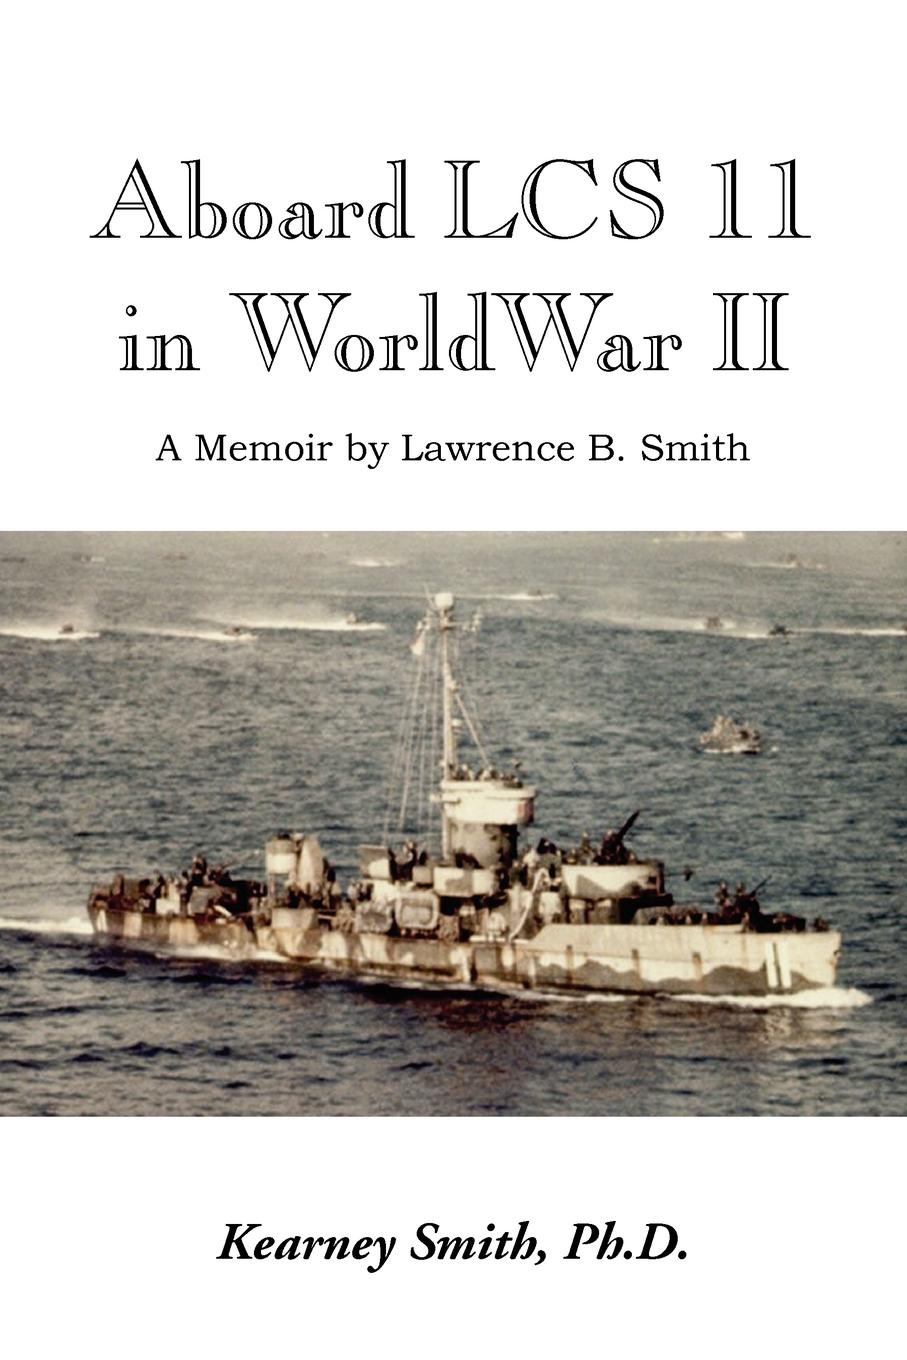 Kearney Ph. D. Smith, Lawrence B. Smith Aboard Lcs 11 in WW II